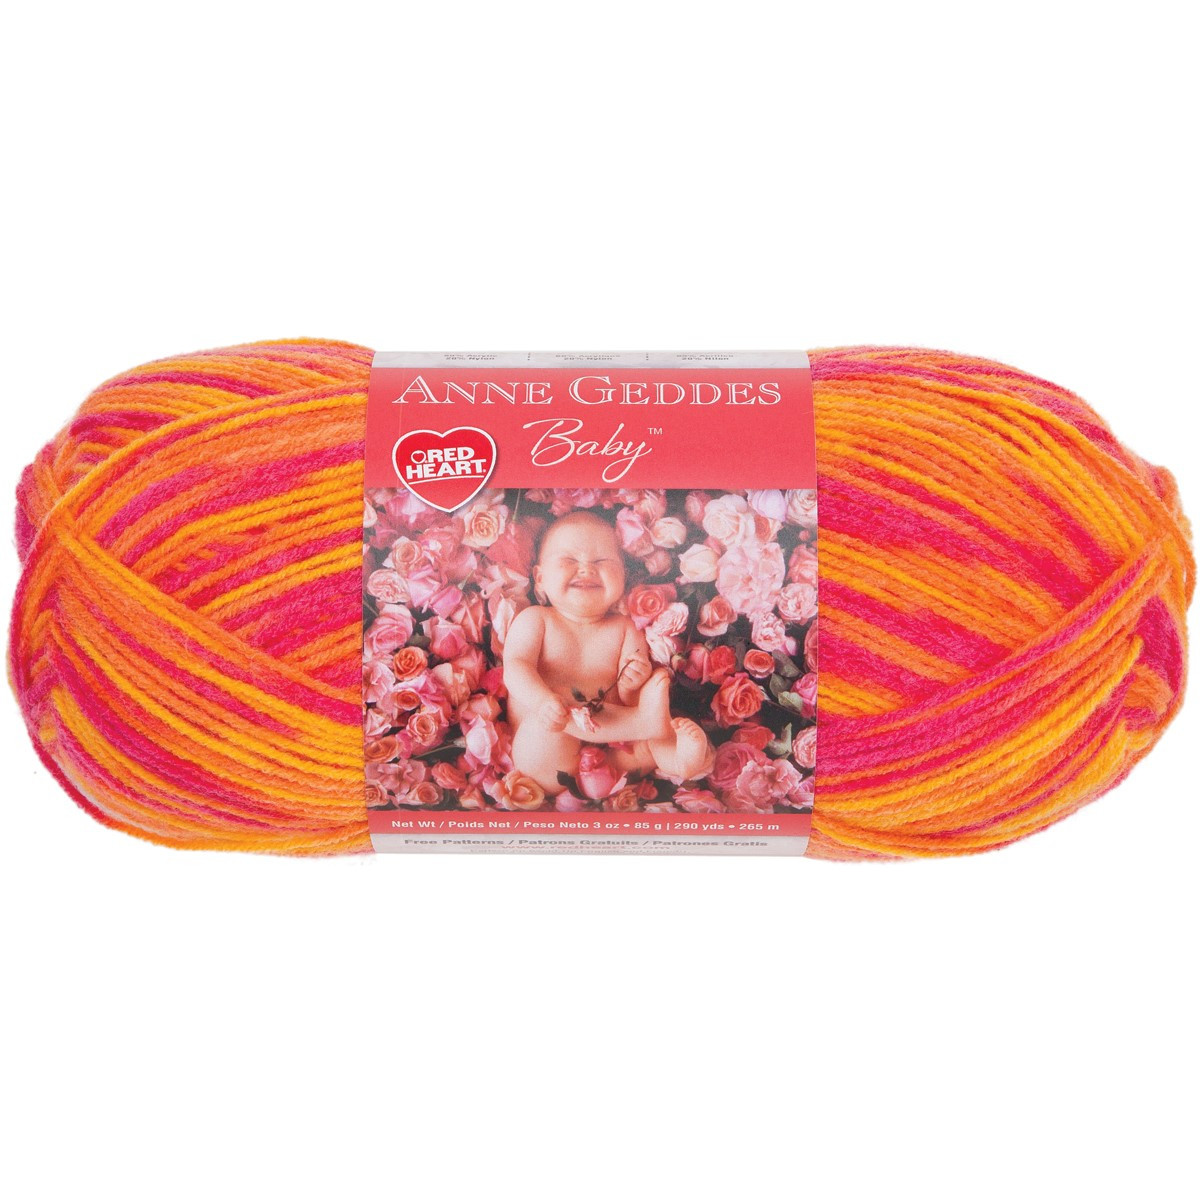 Red Heart Baby Yarn Unique Red Heart Anne Geddes Baby Yarn Scooter Pack Of 2 Of Wonderful 48 Ideas Red Heart Baby Yarn